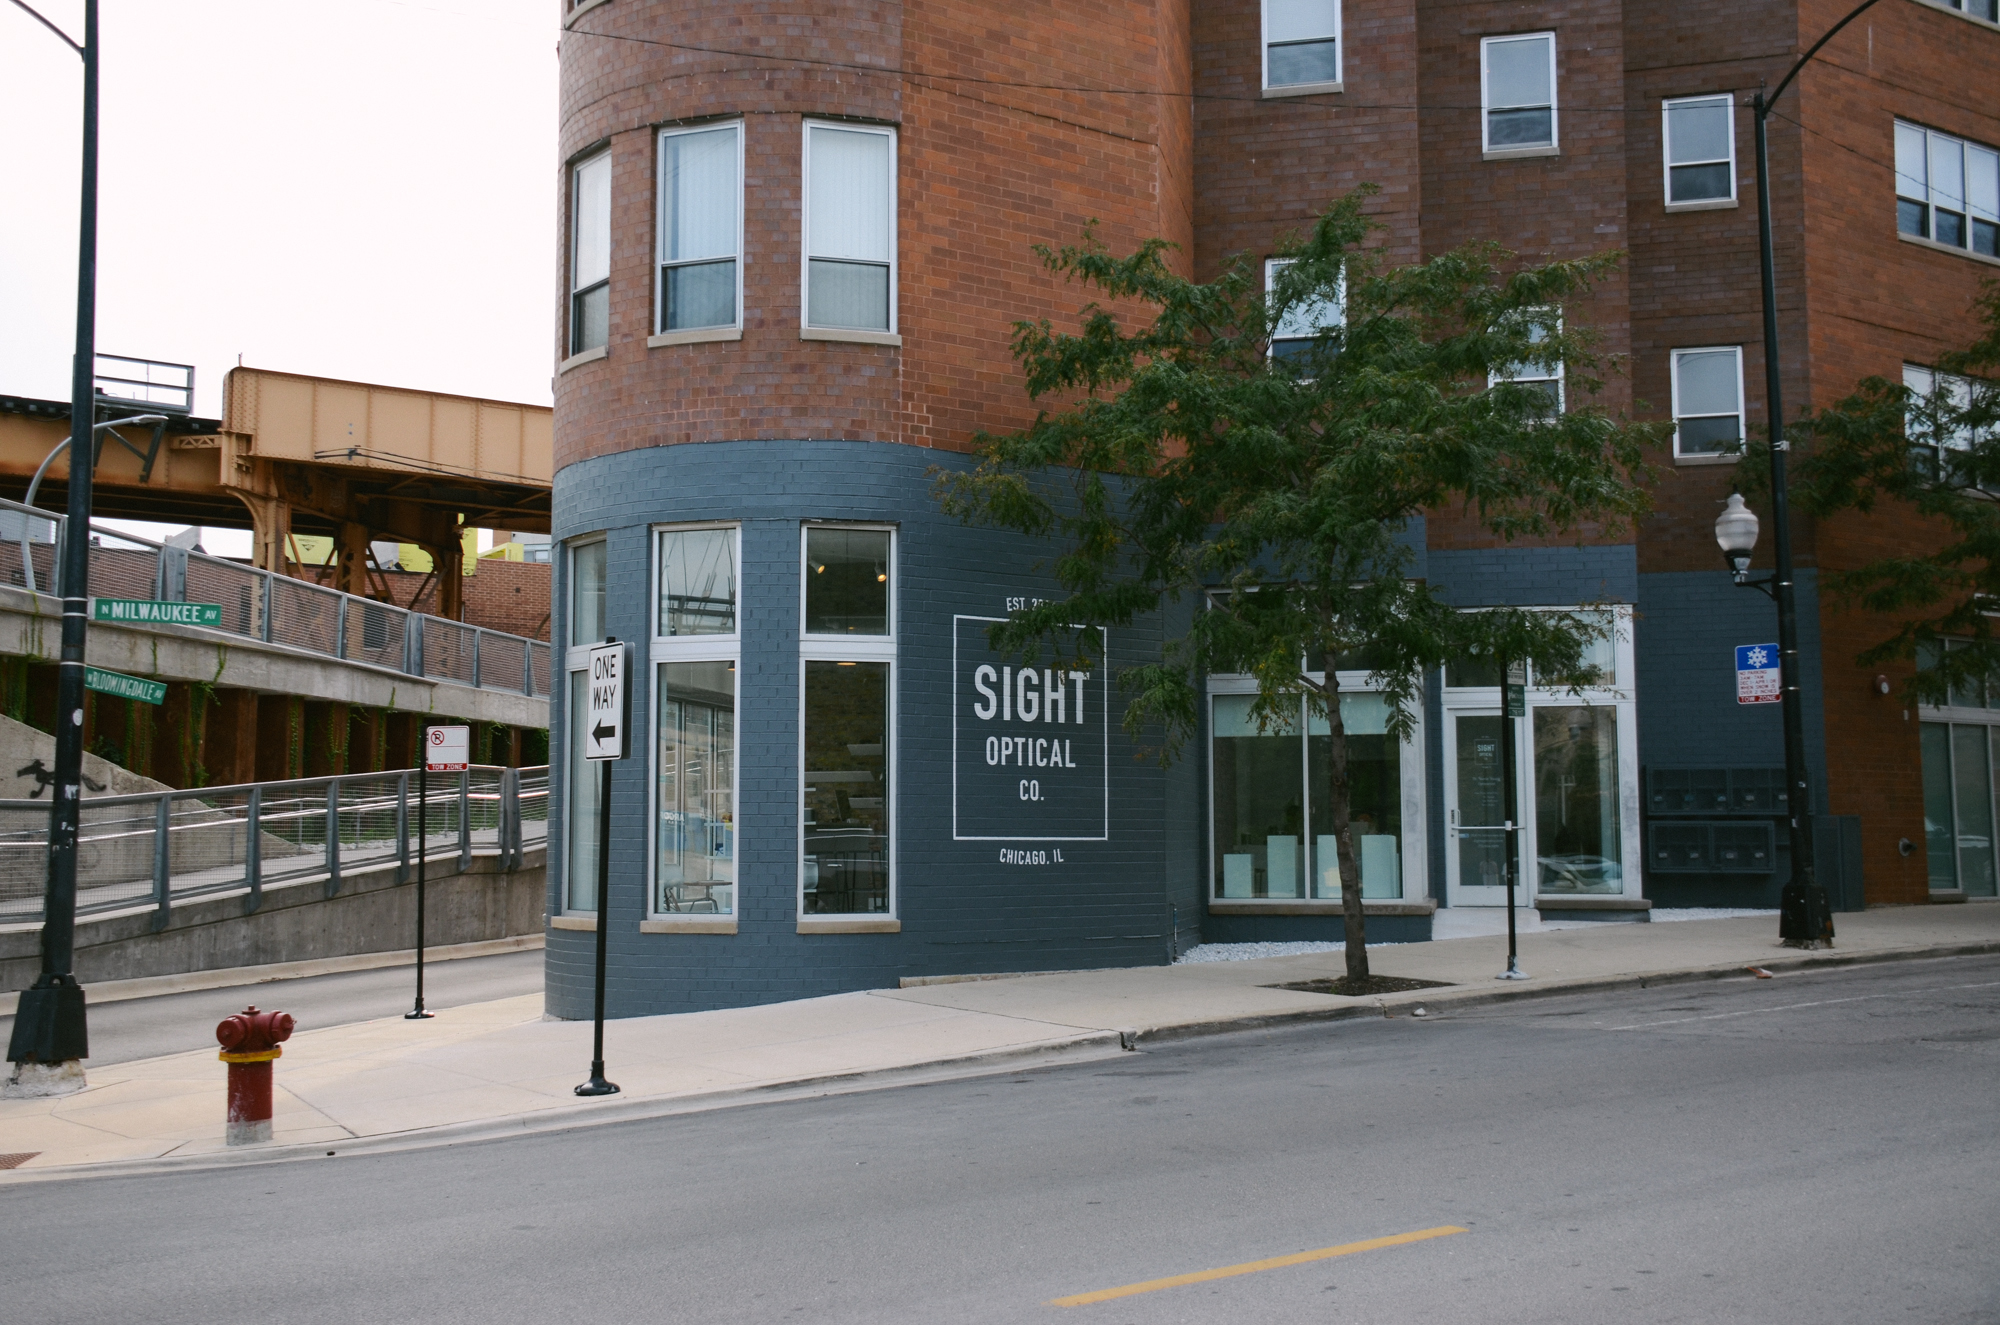 Sight Optical Co. Located in Bucktown, Chicago right by the 606.